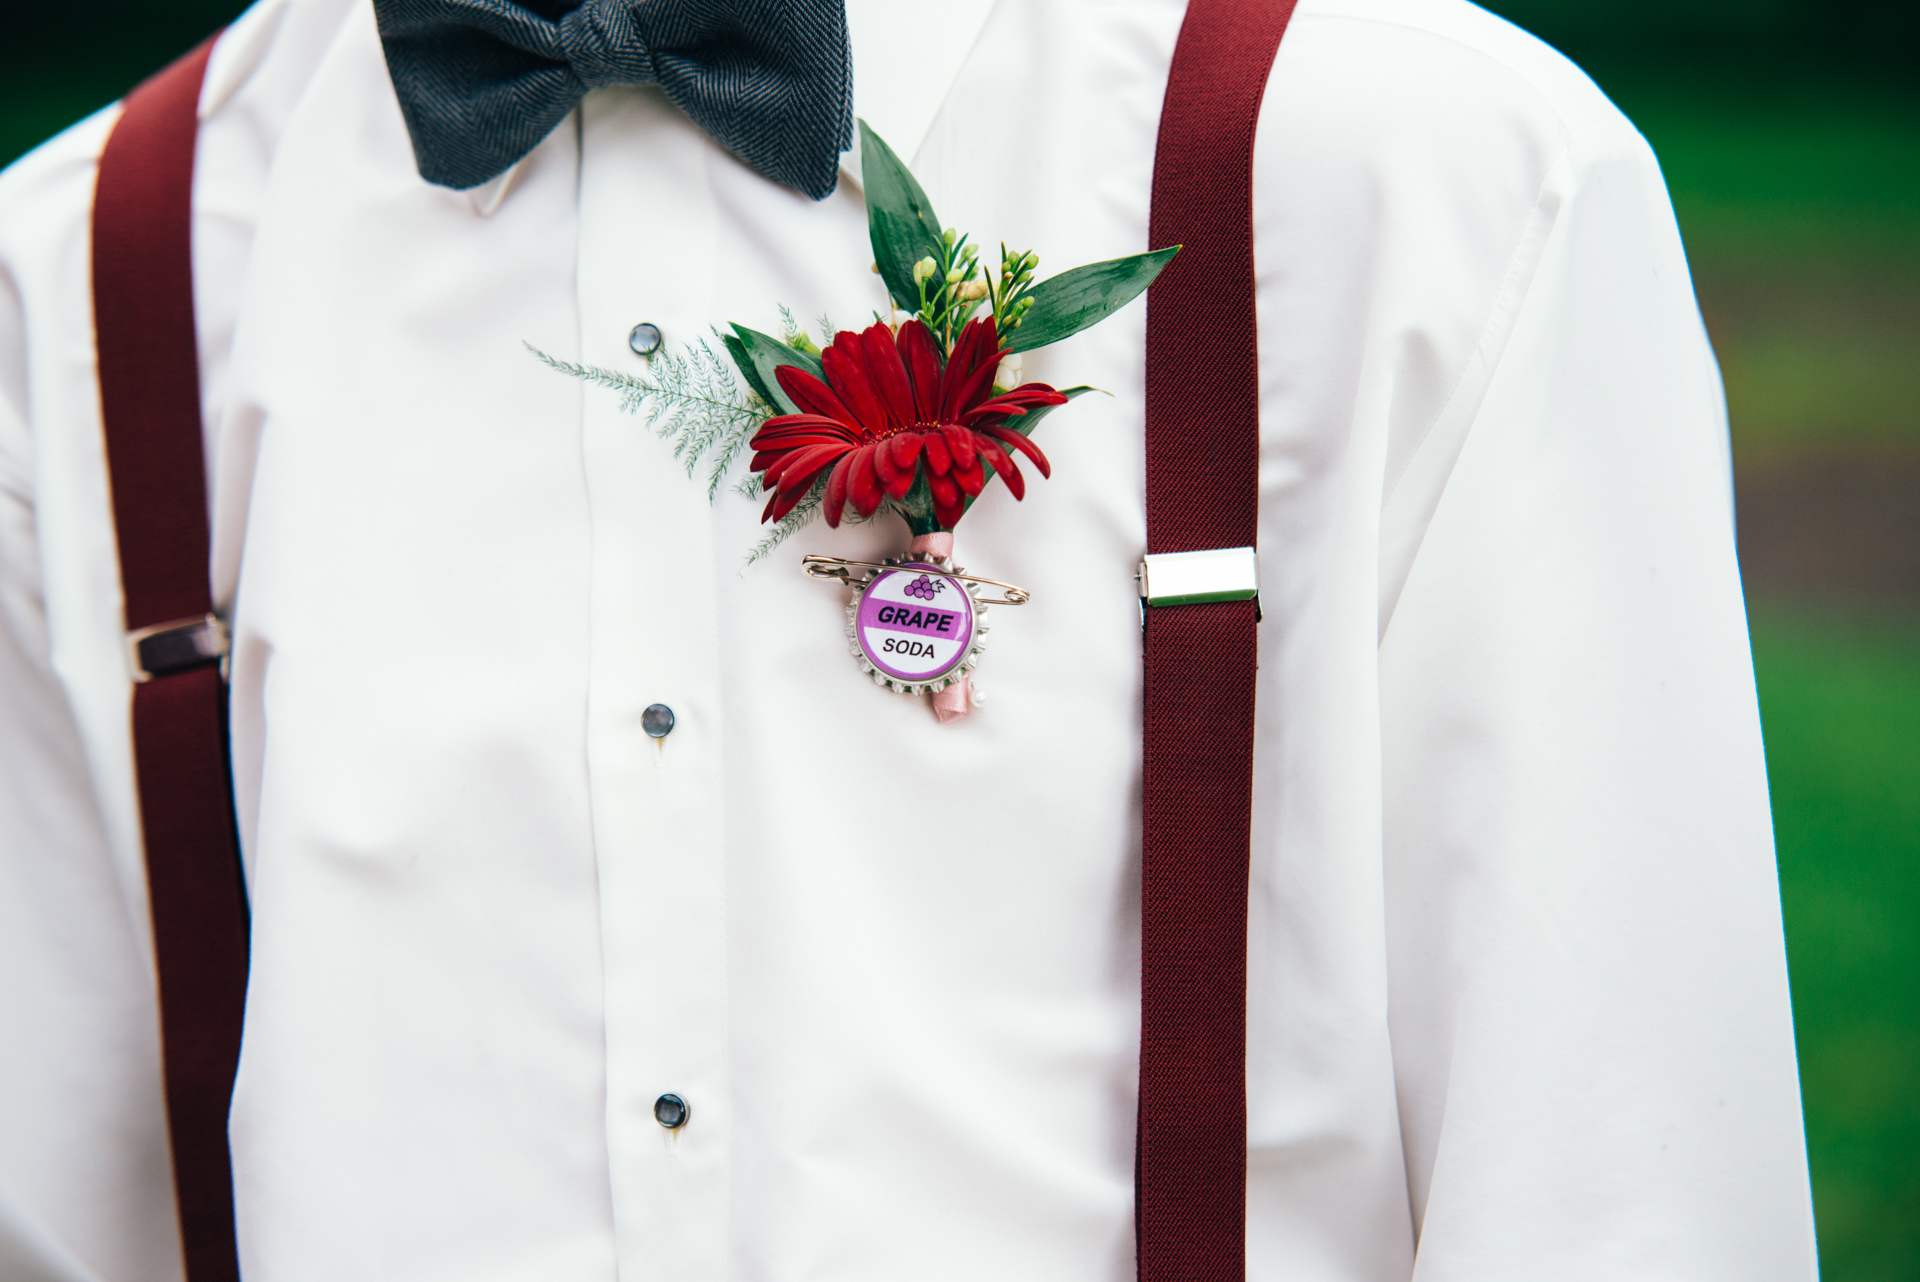 LGBTQ Wedding Details